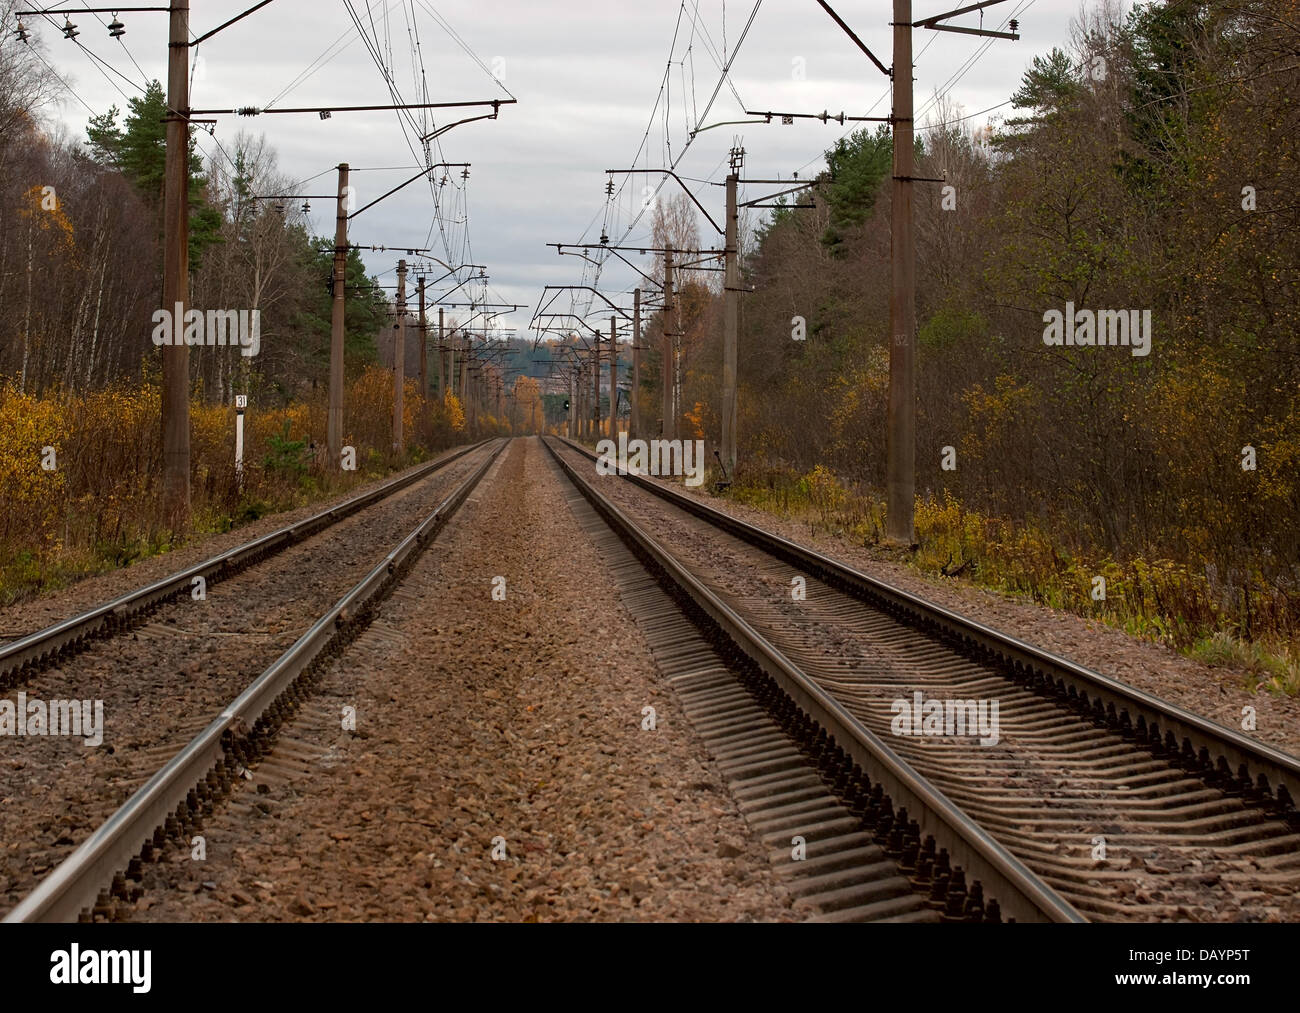 Rails of the railroad in the autumn forest. - Stock Image